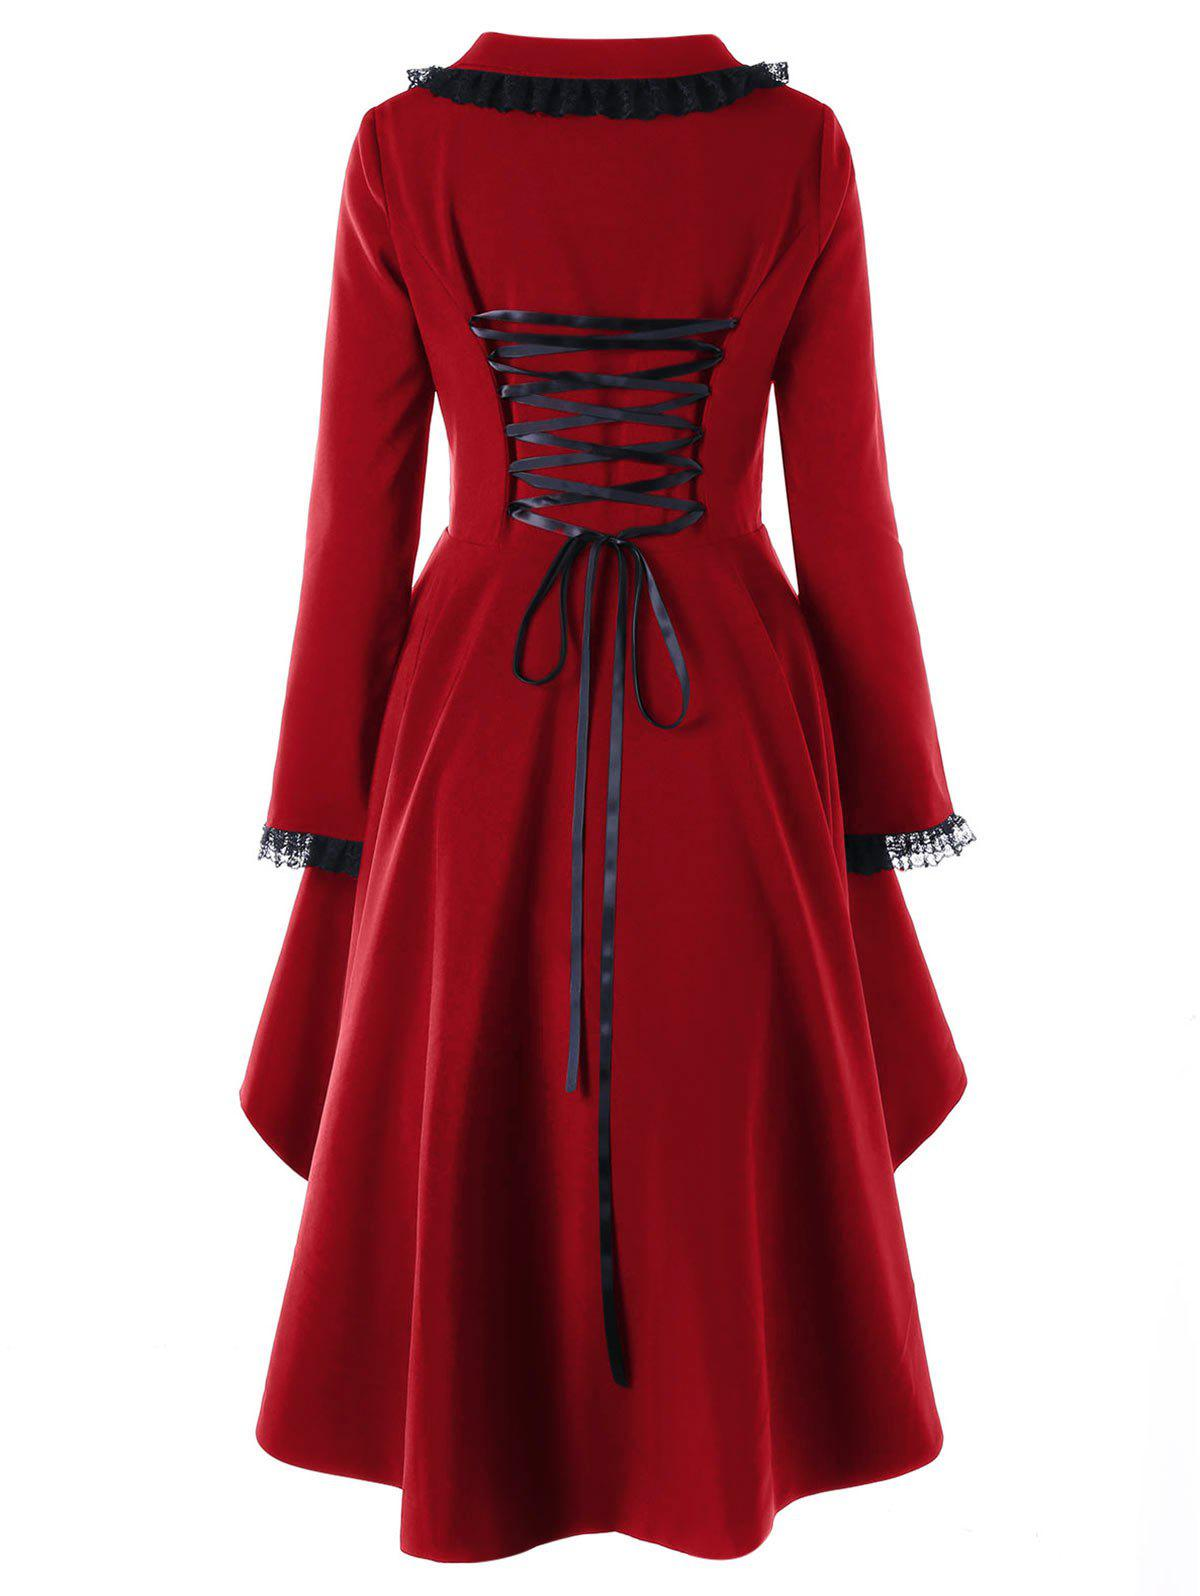 Lace Trimmed High Low Gothic Coat - WINE RED M